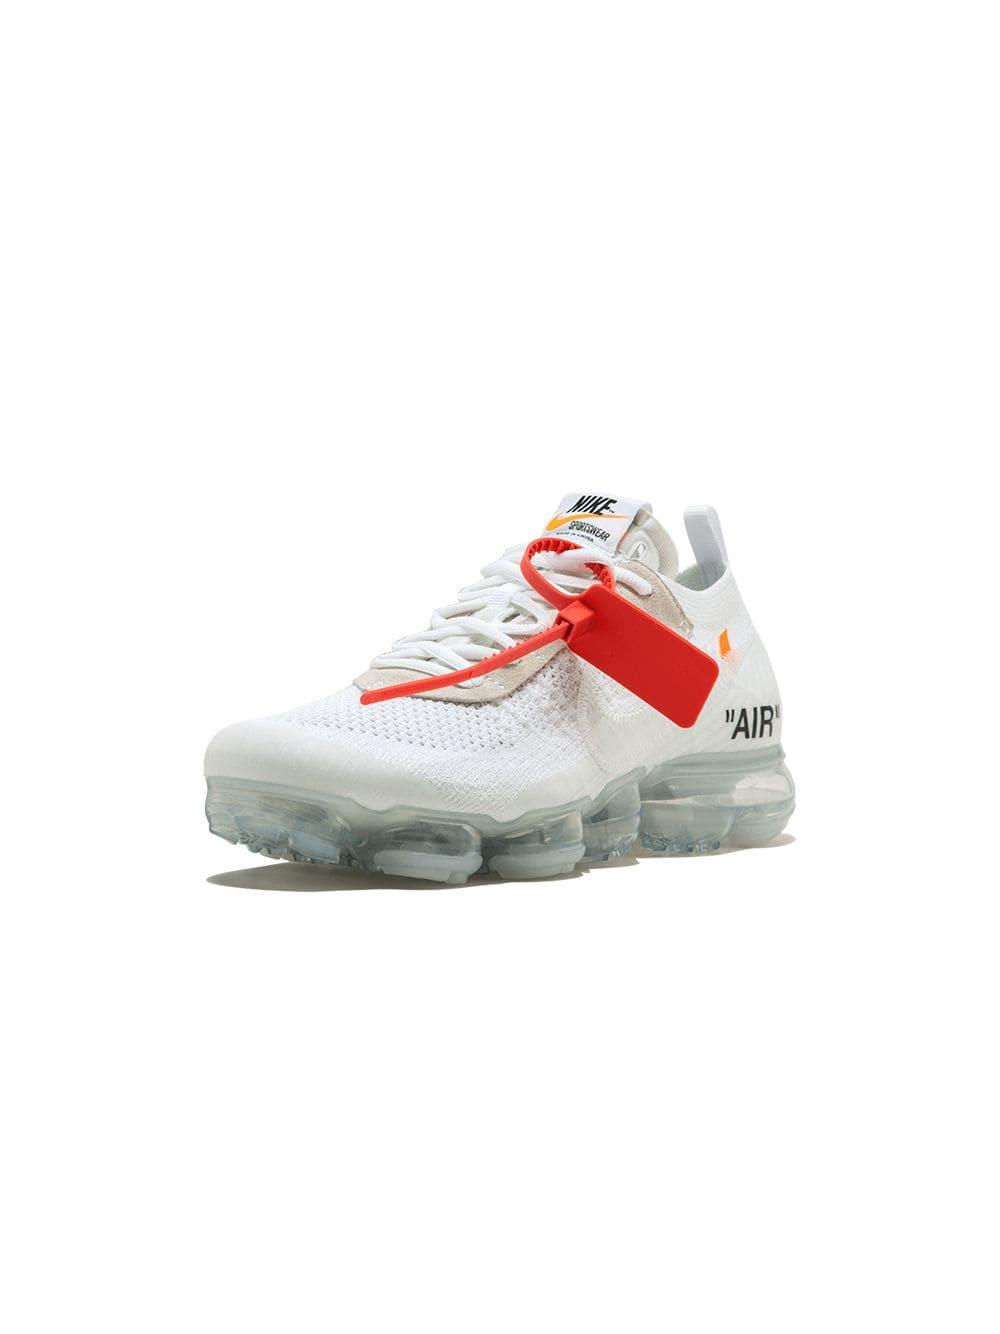 5a935a1ab3d Nike - X Off-white The 10   Air Vapormax Flyknit Sneakers for Men -. View  fullscreen